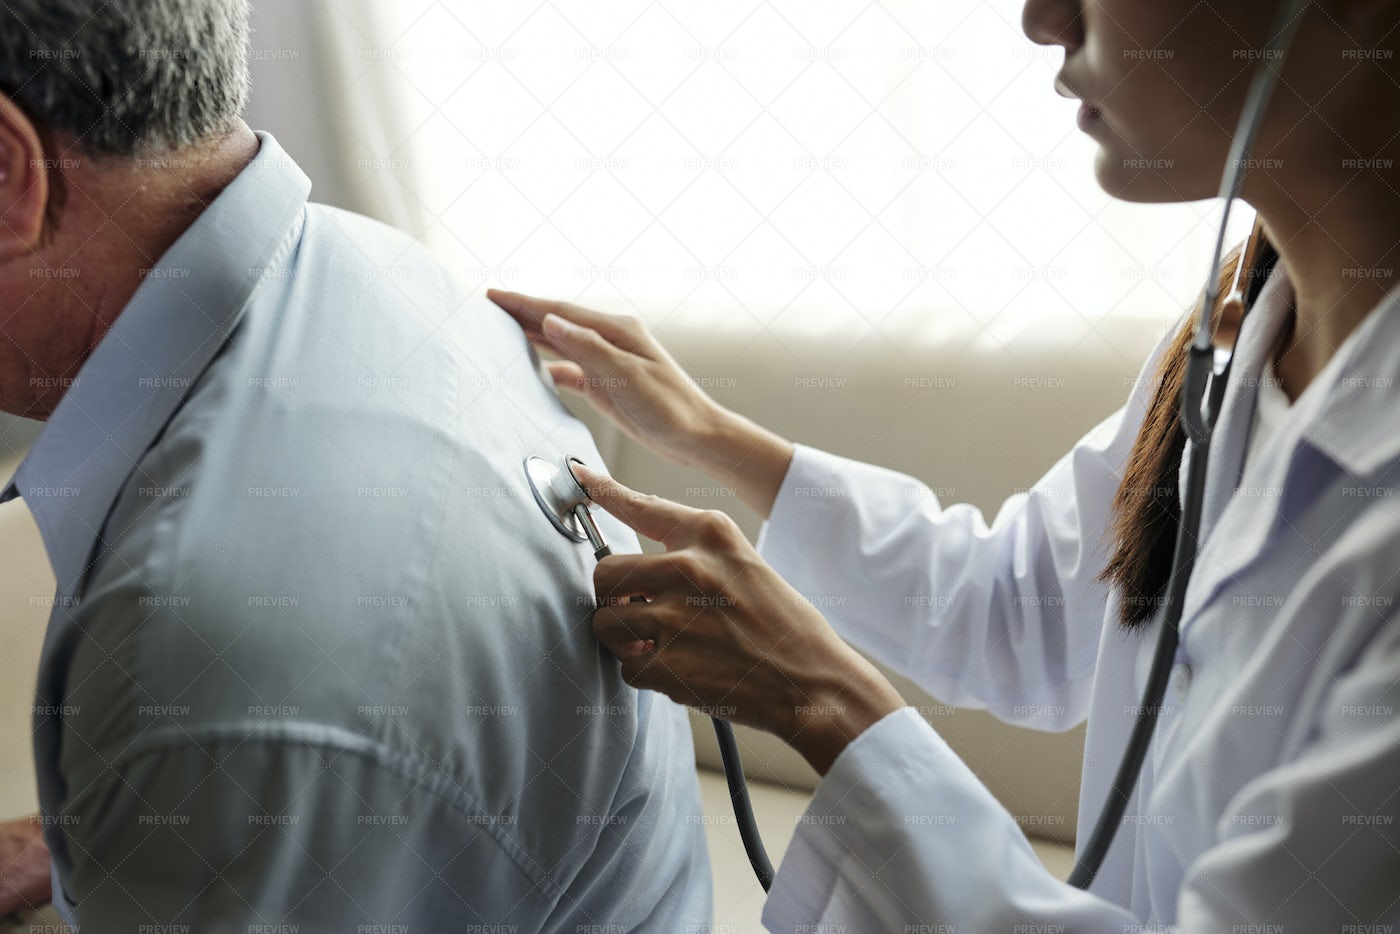 Doctor Examining The Patient With: Stock Photos